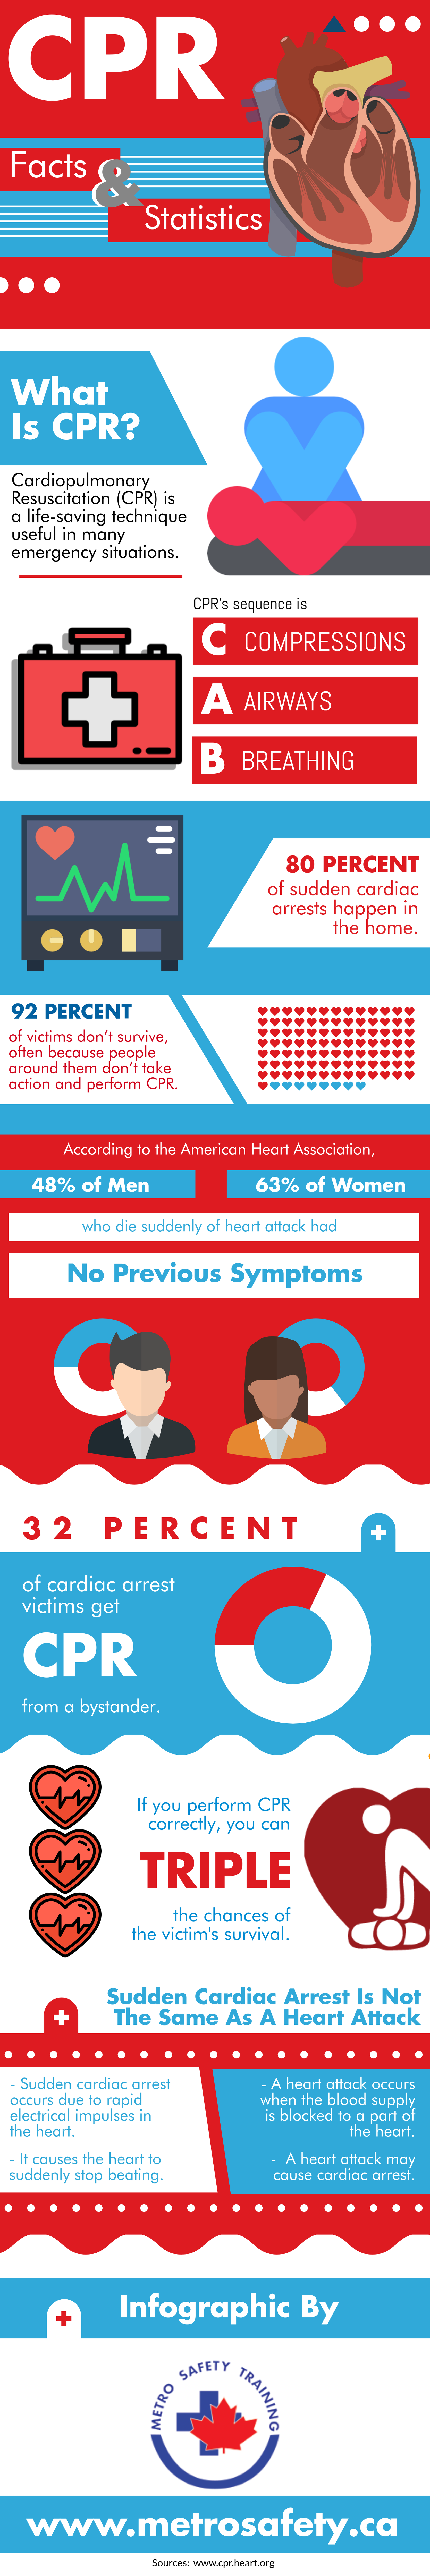 CPR- Facts & Statistics